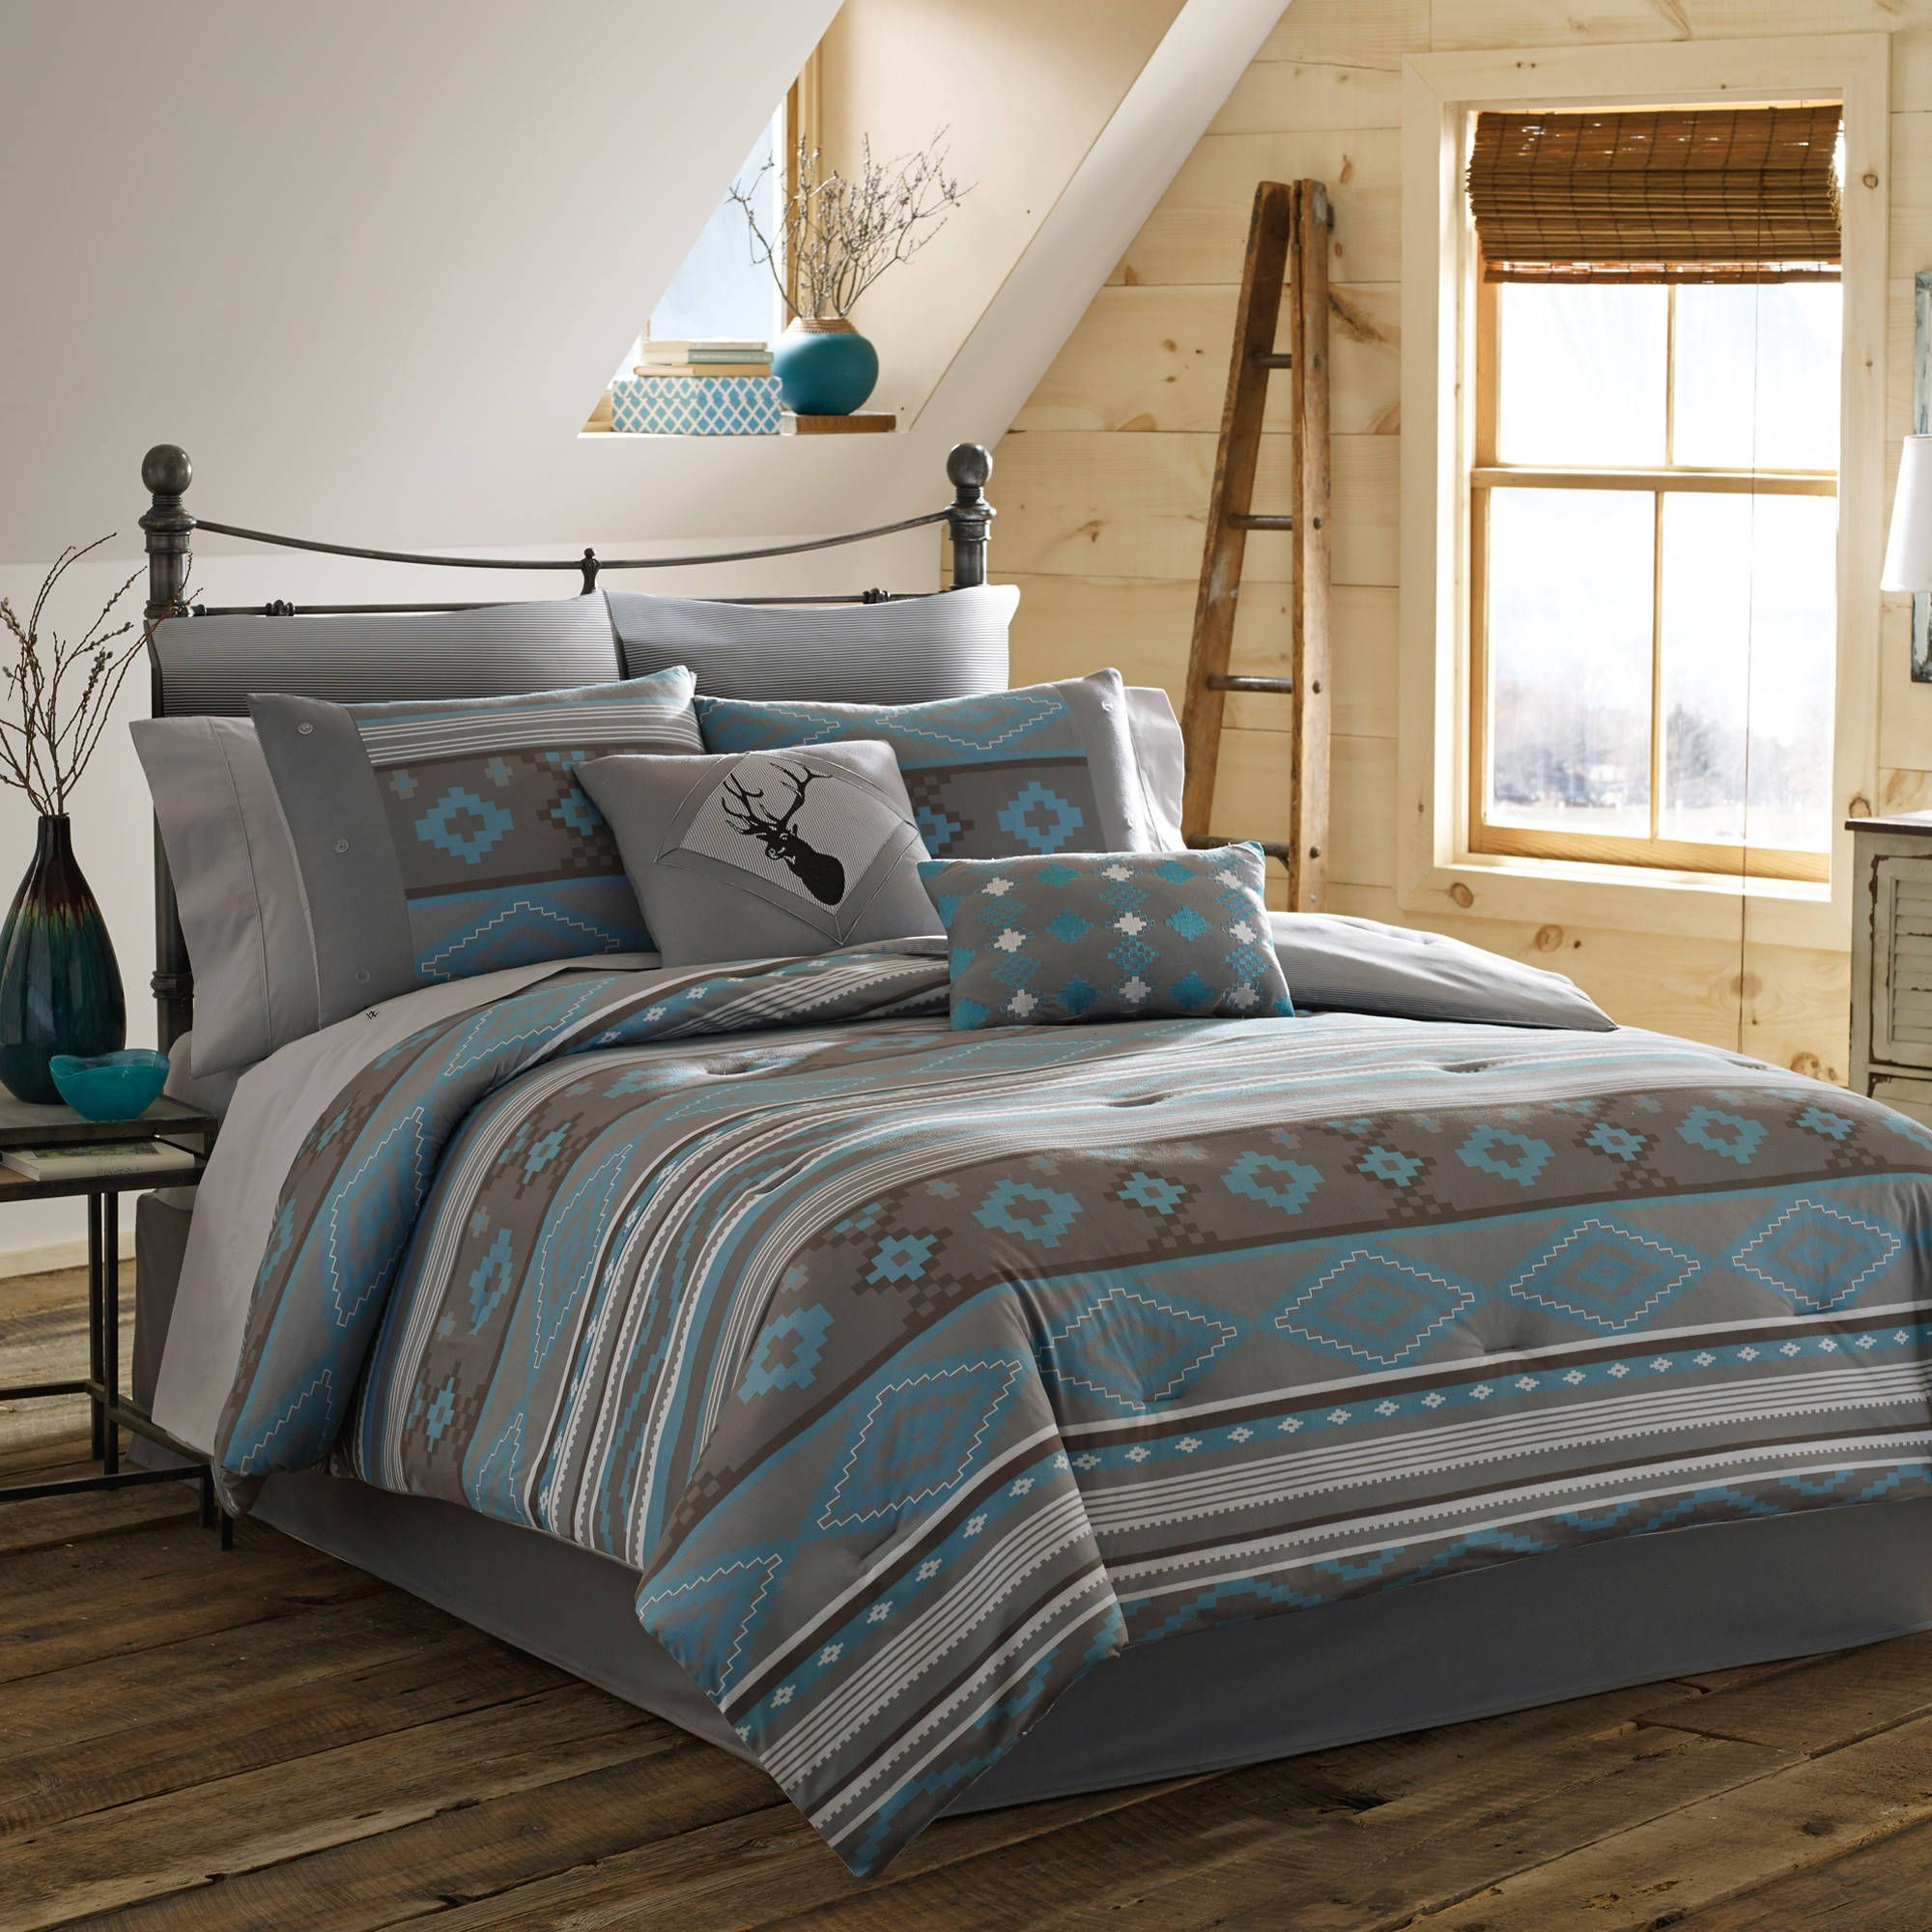 Grey Stripped Pillow On Teal Grey Bedding Of A Welcome Comfort